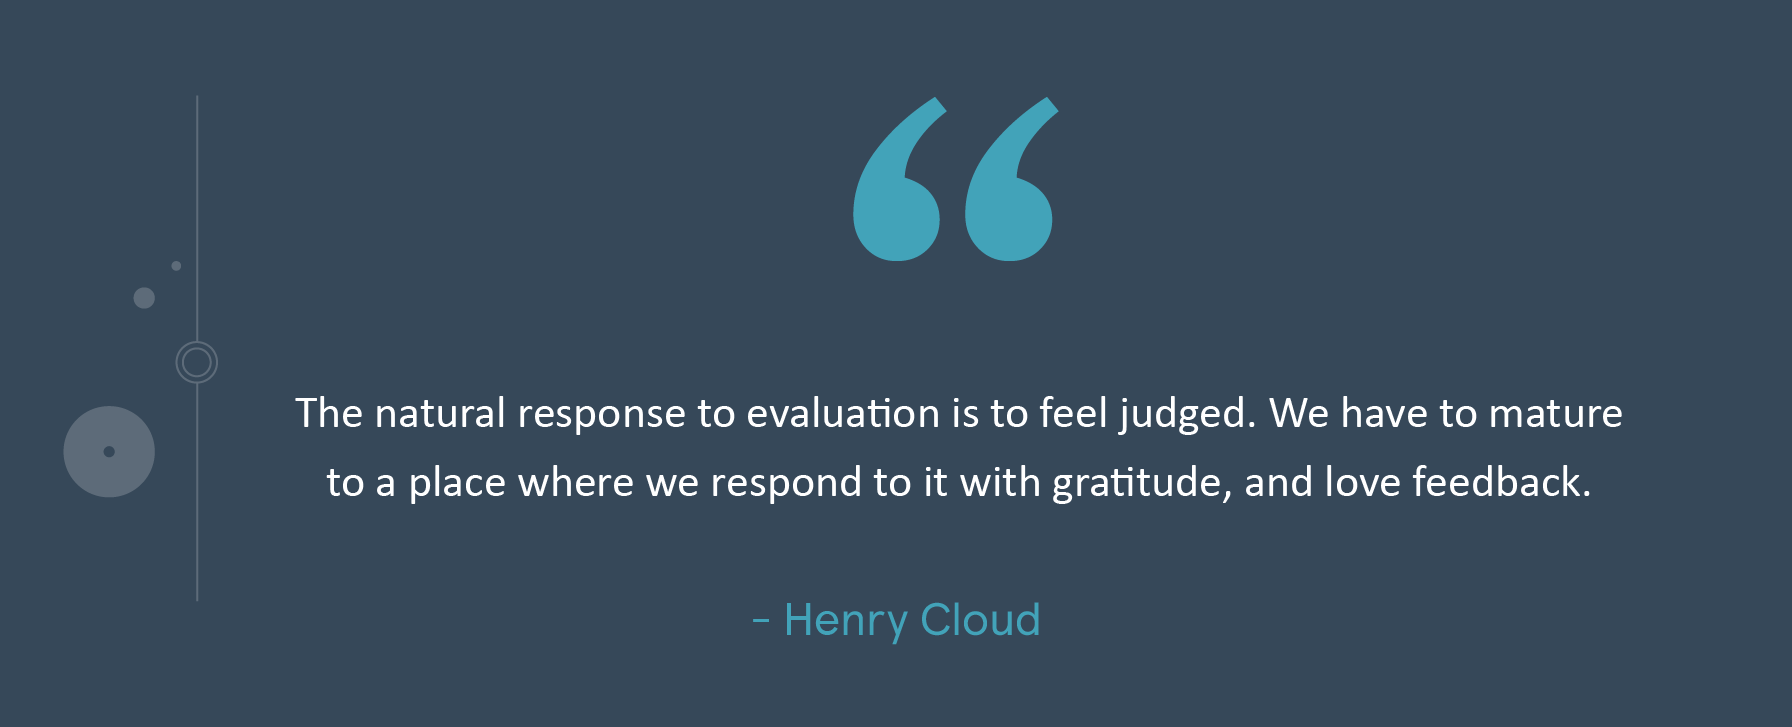 The natural response to evaluation is to feel judged. We have to mature to a place where we respond to it with gratitude, and love feedback. -Henry Cloud